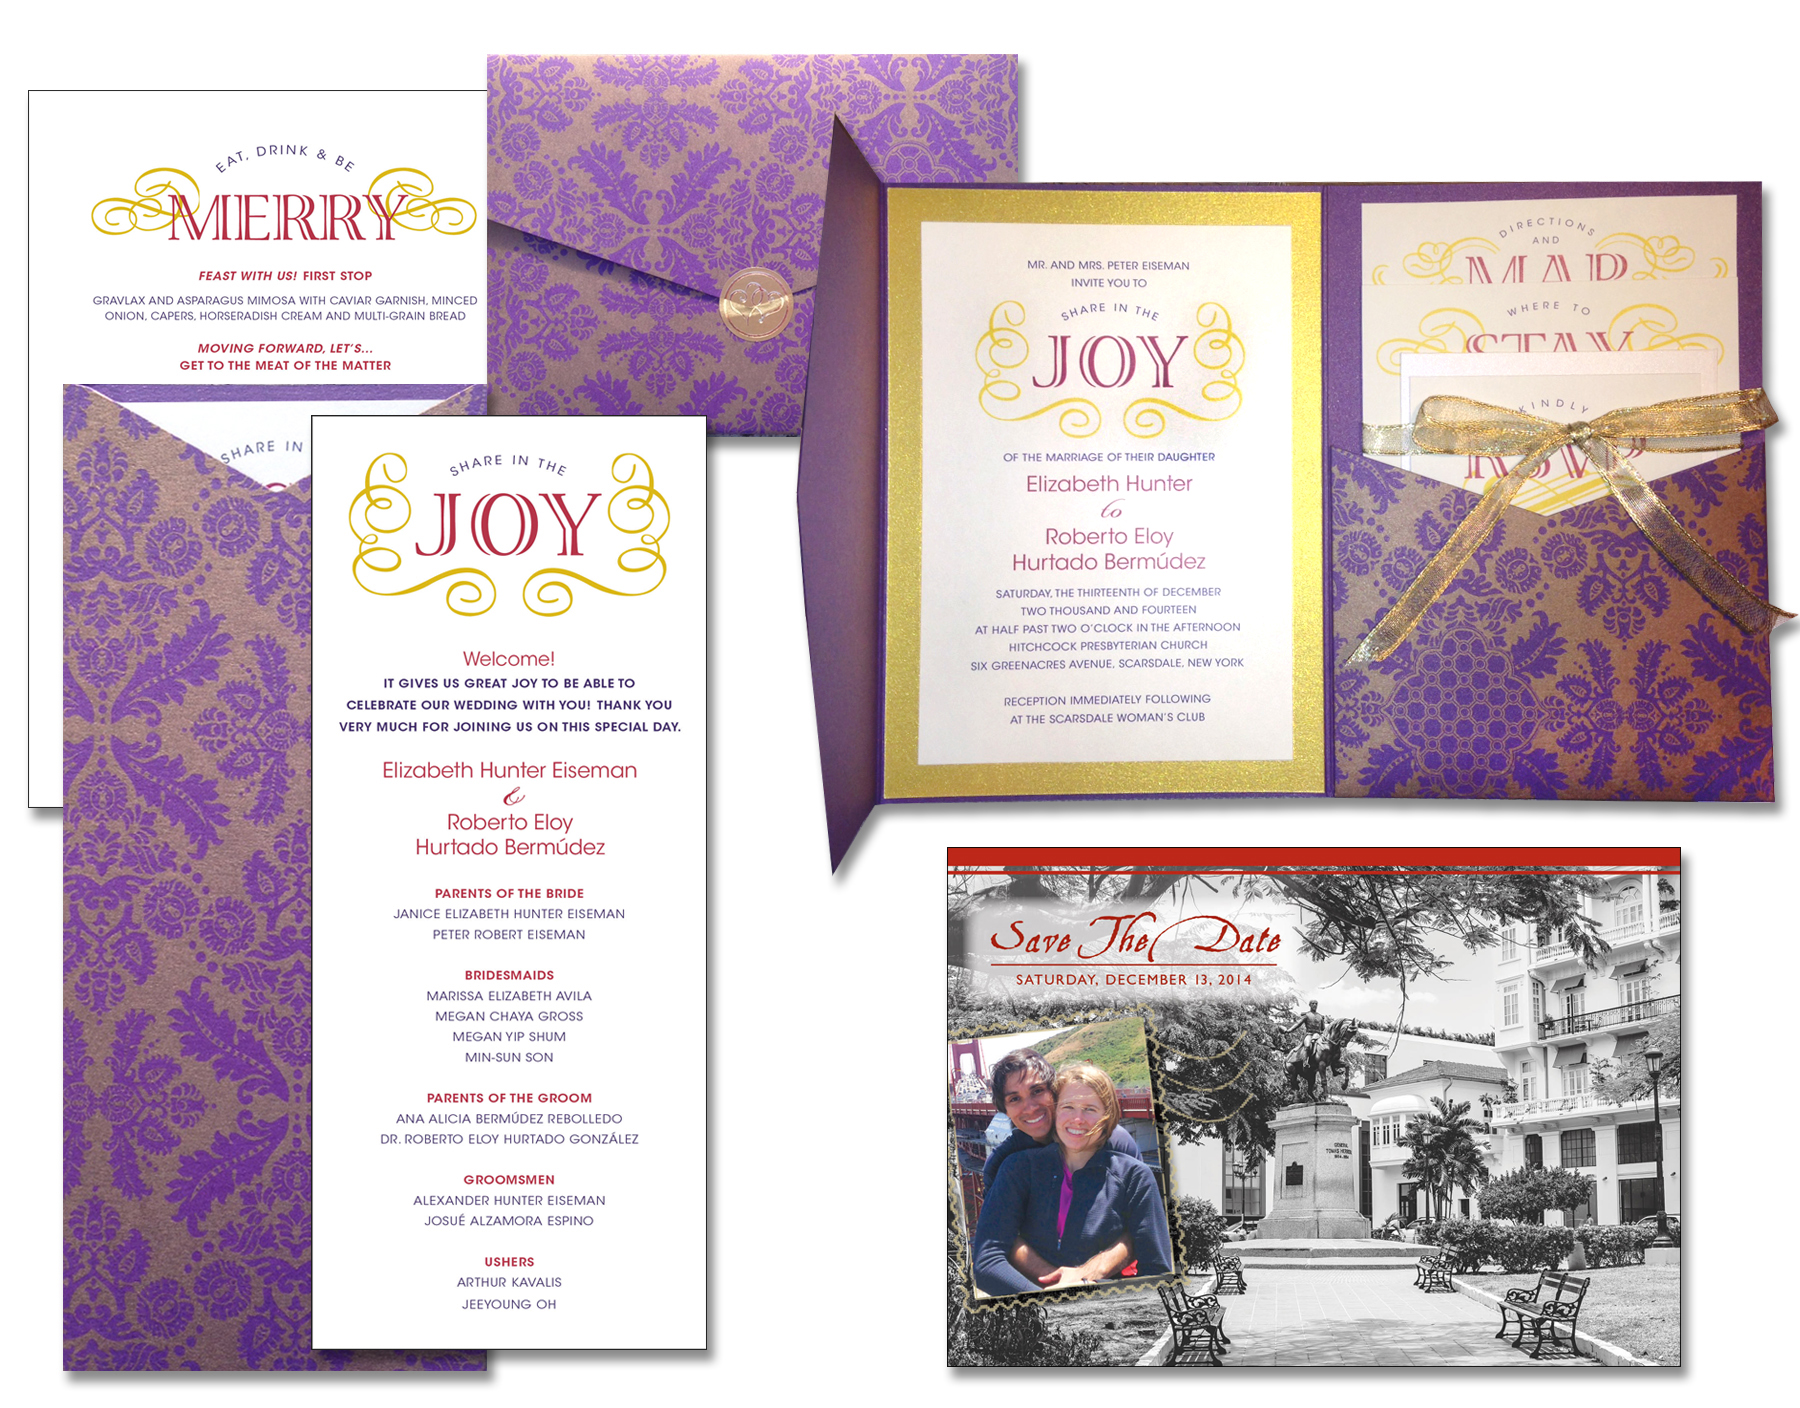 The custom-made, one-of-a-kind wedding materials consisted of the Save The Date postcard, the wedding invitation (with two inserts and the response card tied with a ribbon), the wedding program as well as menu cards – beautifully framed andset at each table for the guests.